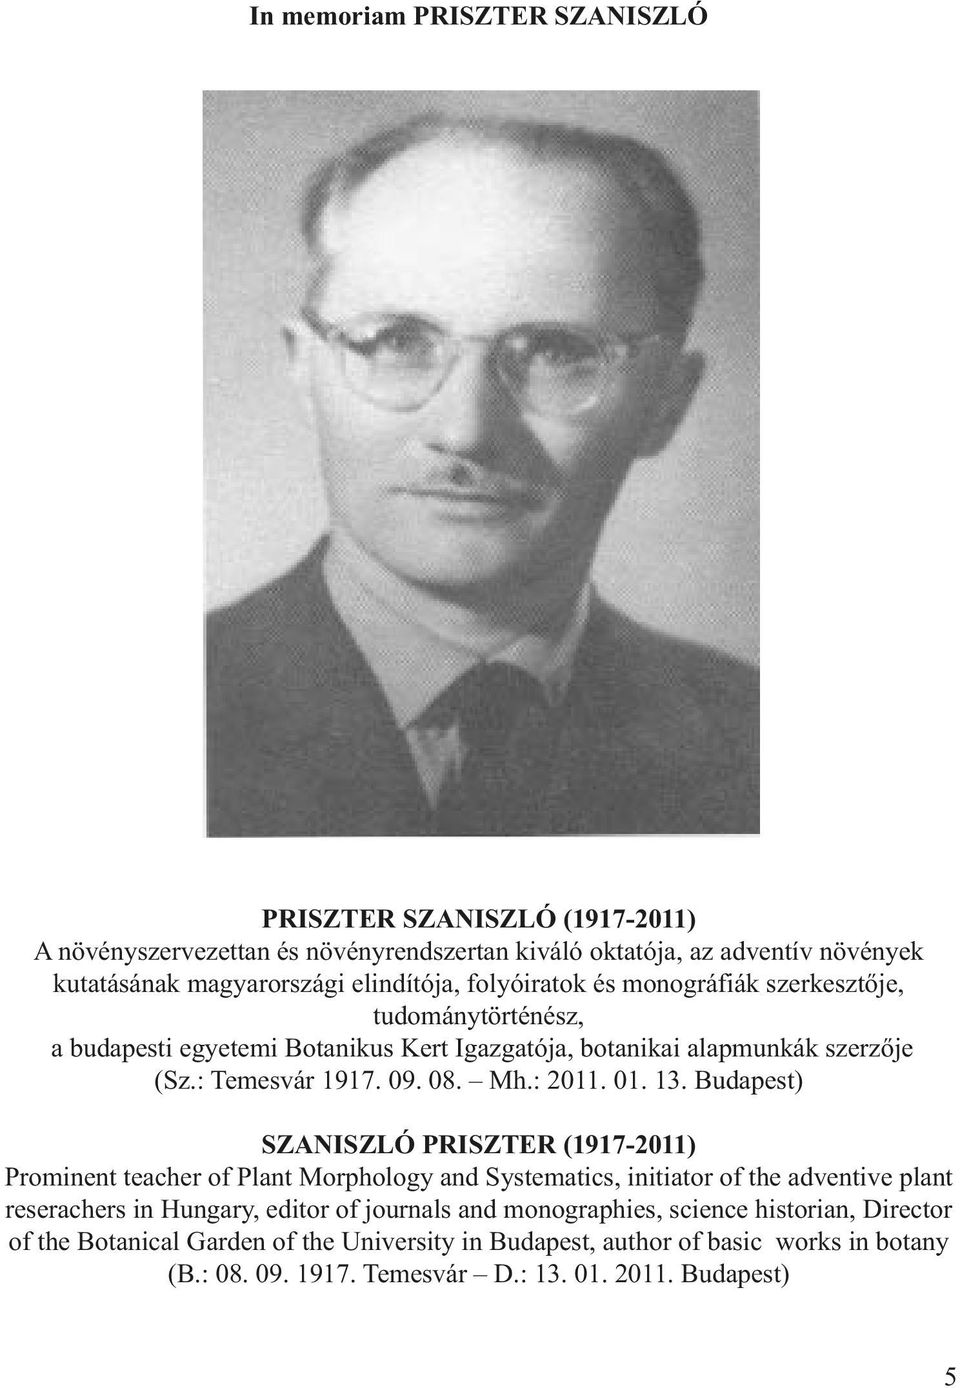 13. Budapest) SZANISZLÓ PRISZTER (1917-2011) Prominent teacher of Plant Morphology and Systematics, initiator of the adventive plant reserachers in Hungary, editor of journals and